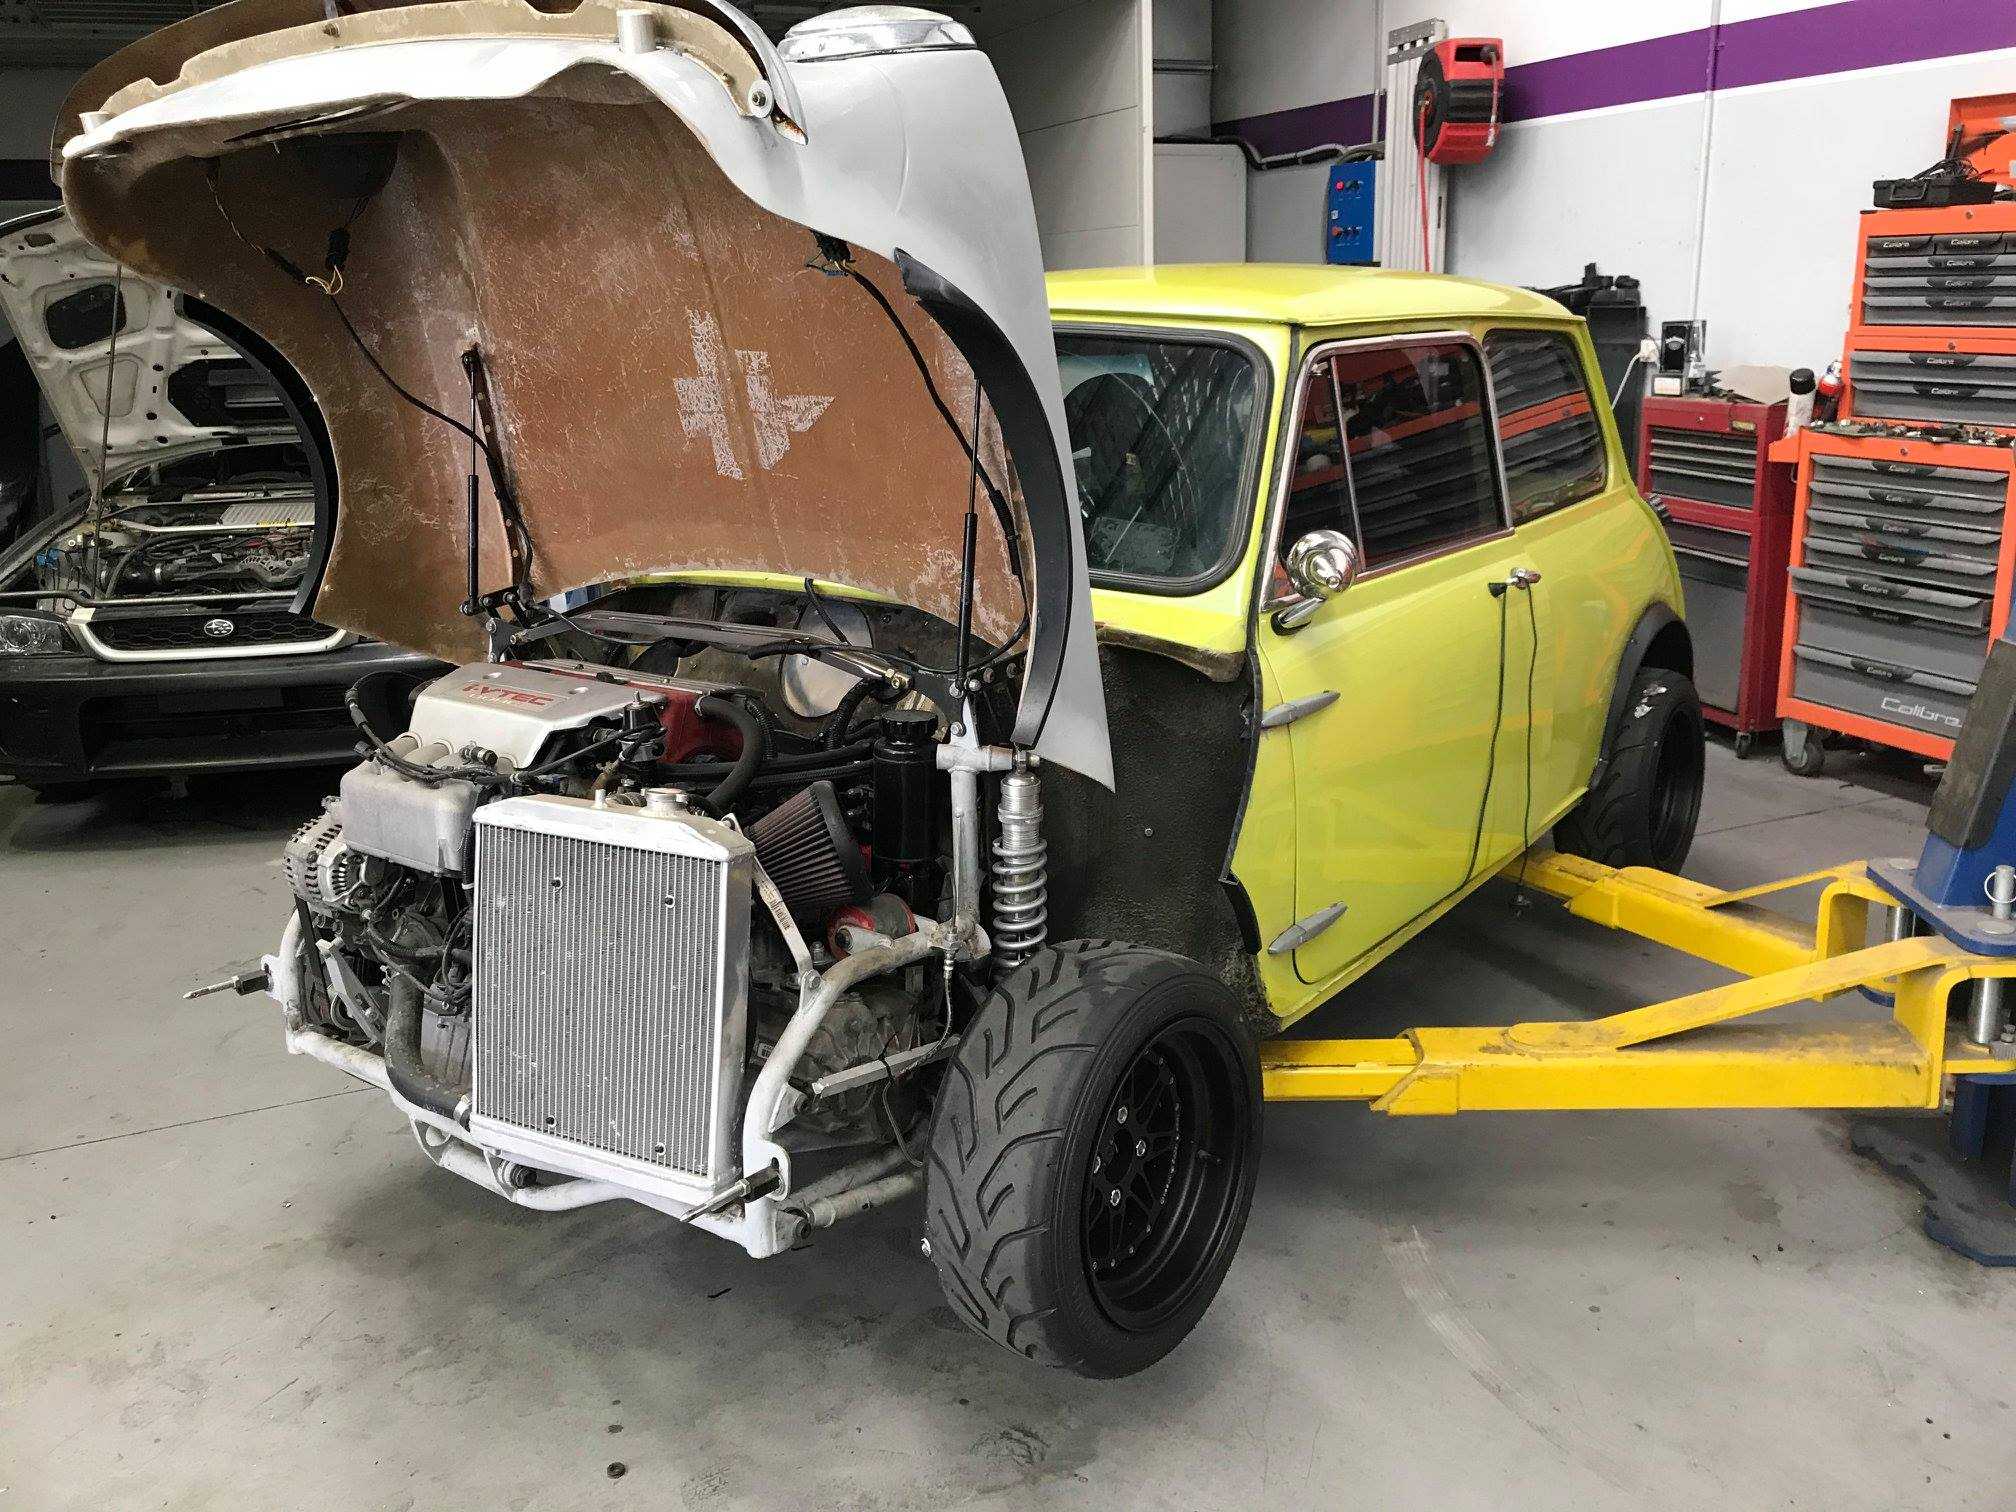 awd mini with a k20 inline